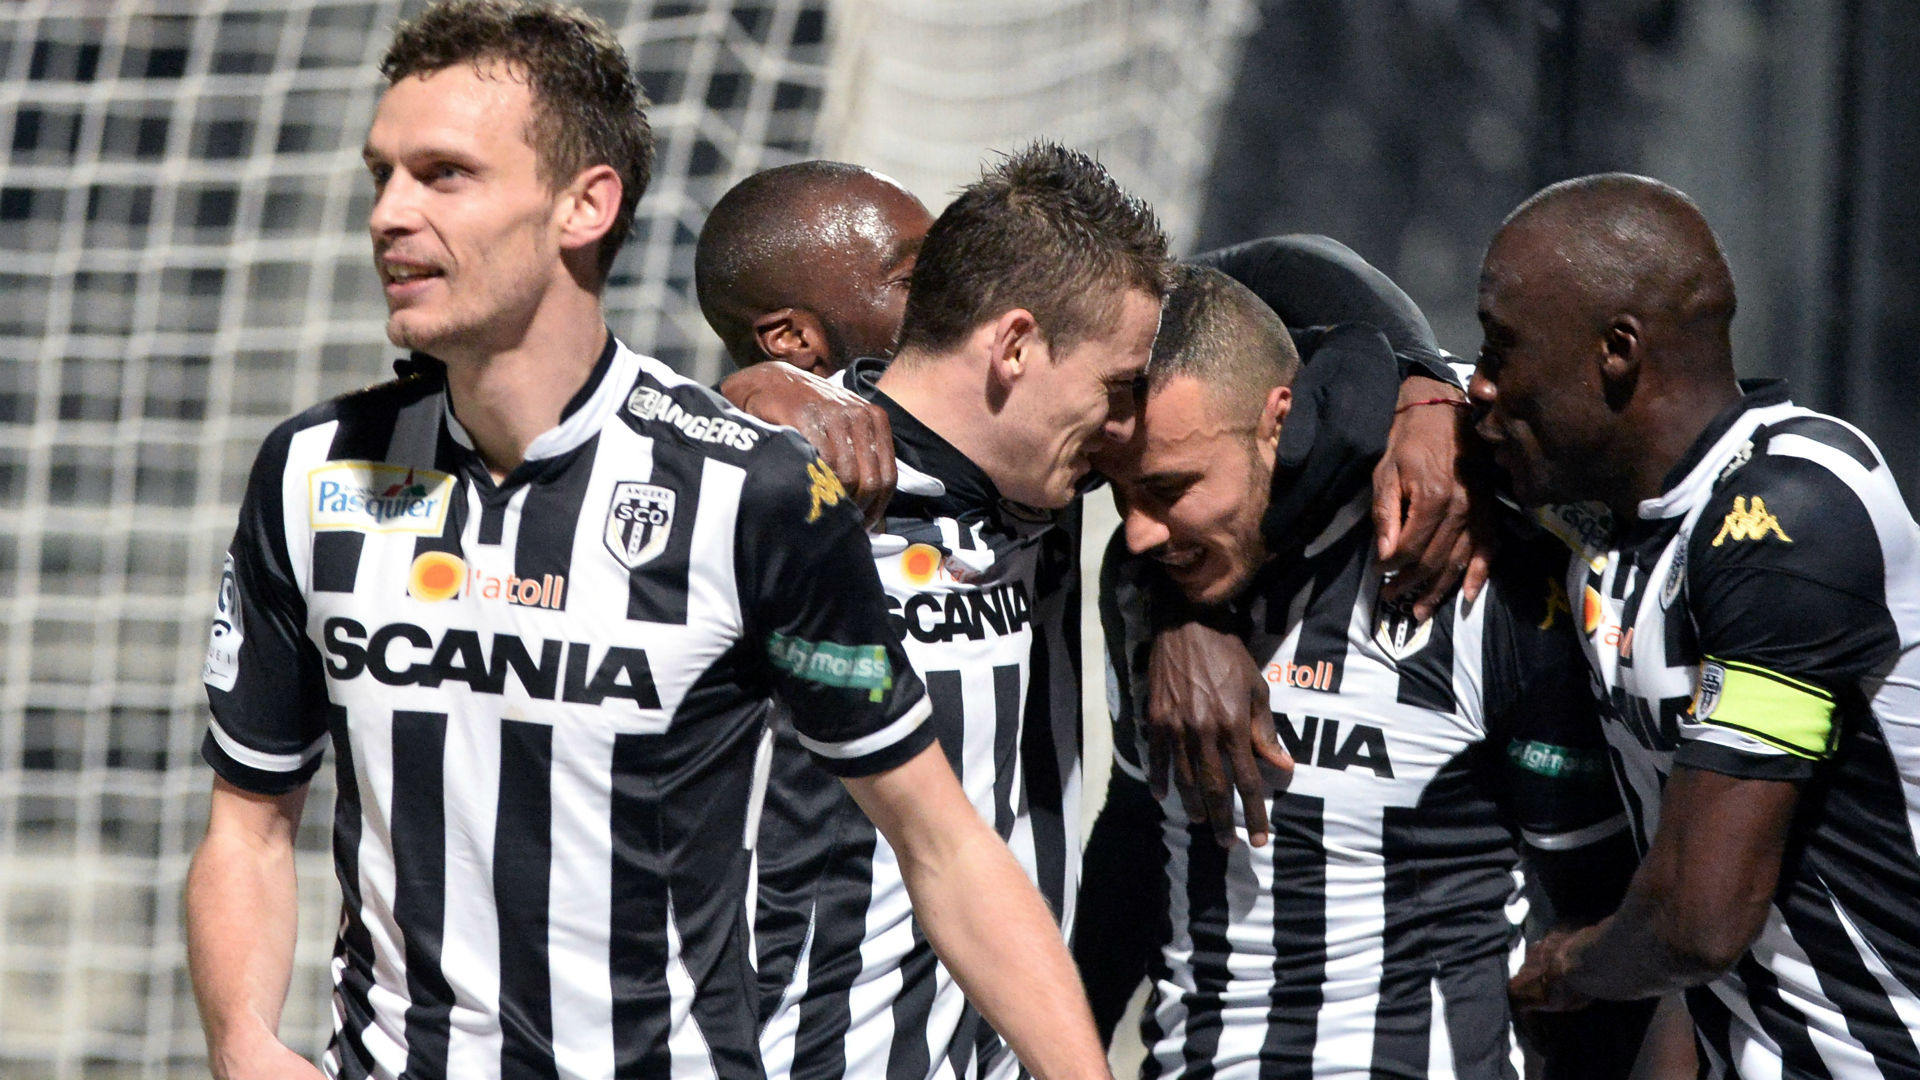 angers 5 - 1 lorient r u00e9sum u00e9 du match 19  03  16 ligue 1